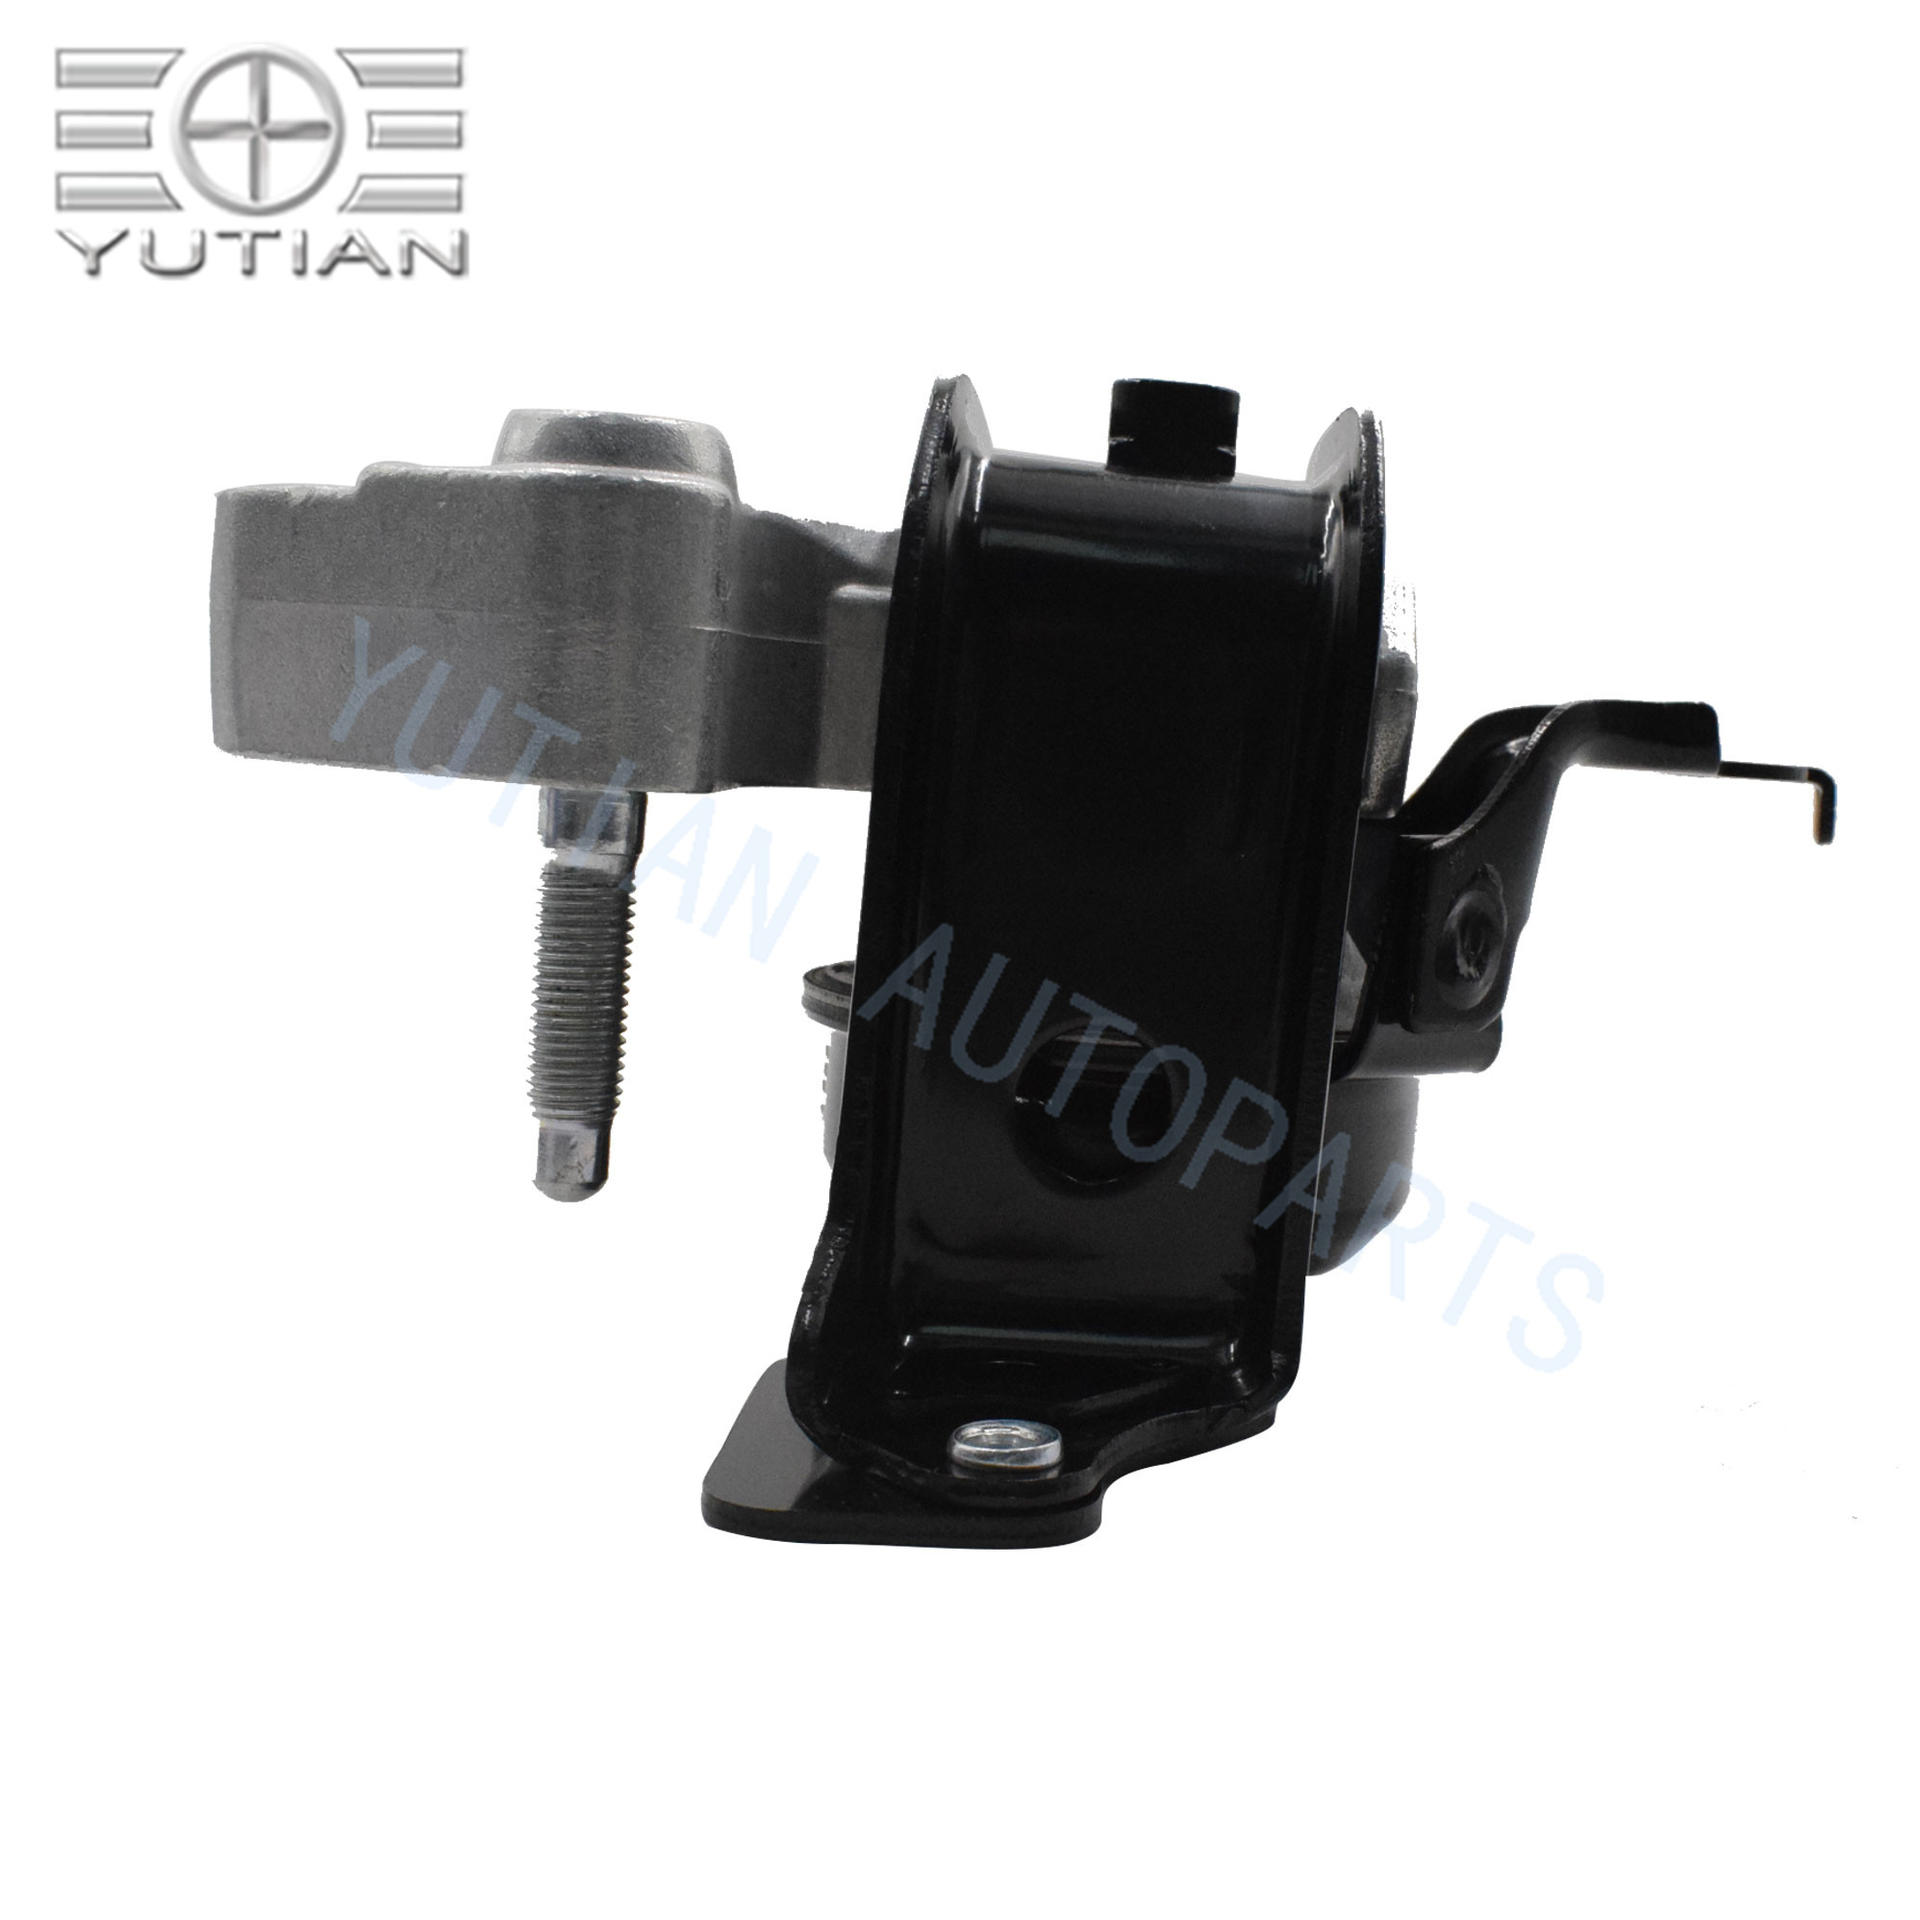 For Toyota VOIS AXP4 2002-2005 1.3/1.5 Right Engine Mount Bracket OEM 12305-02060